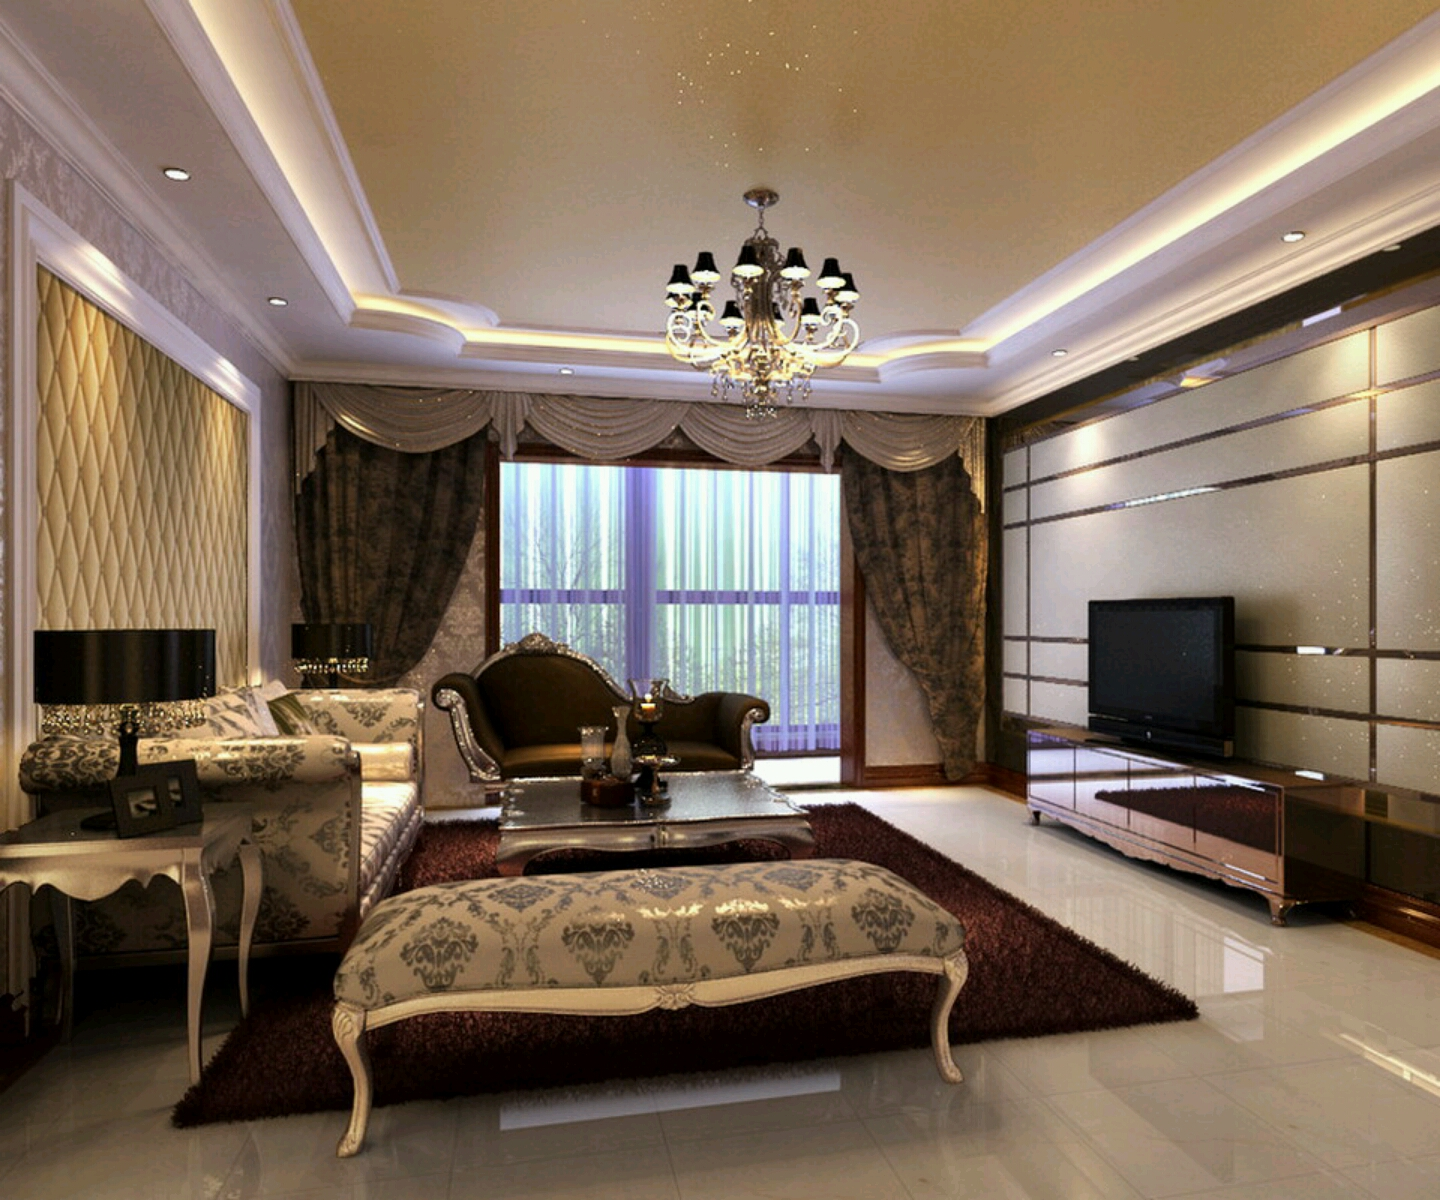 New home designs latest luxury homes interior decoration Interior design  ideas living room Design Ideas Living Room Home Fxmoz com